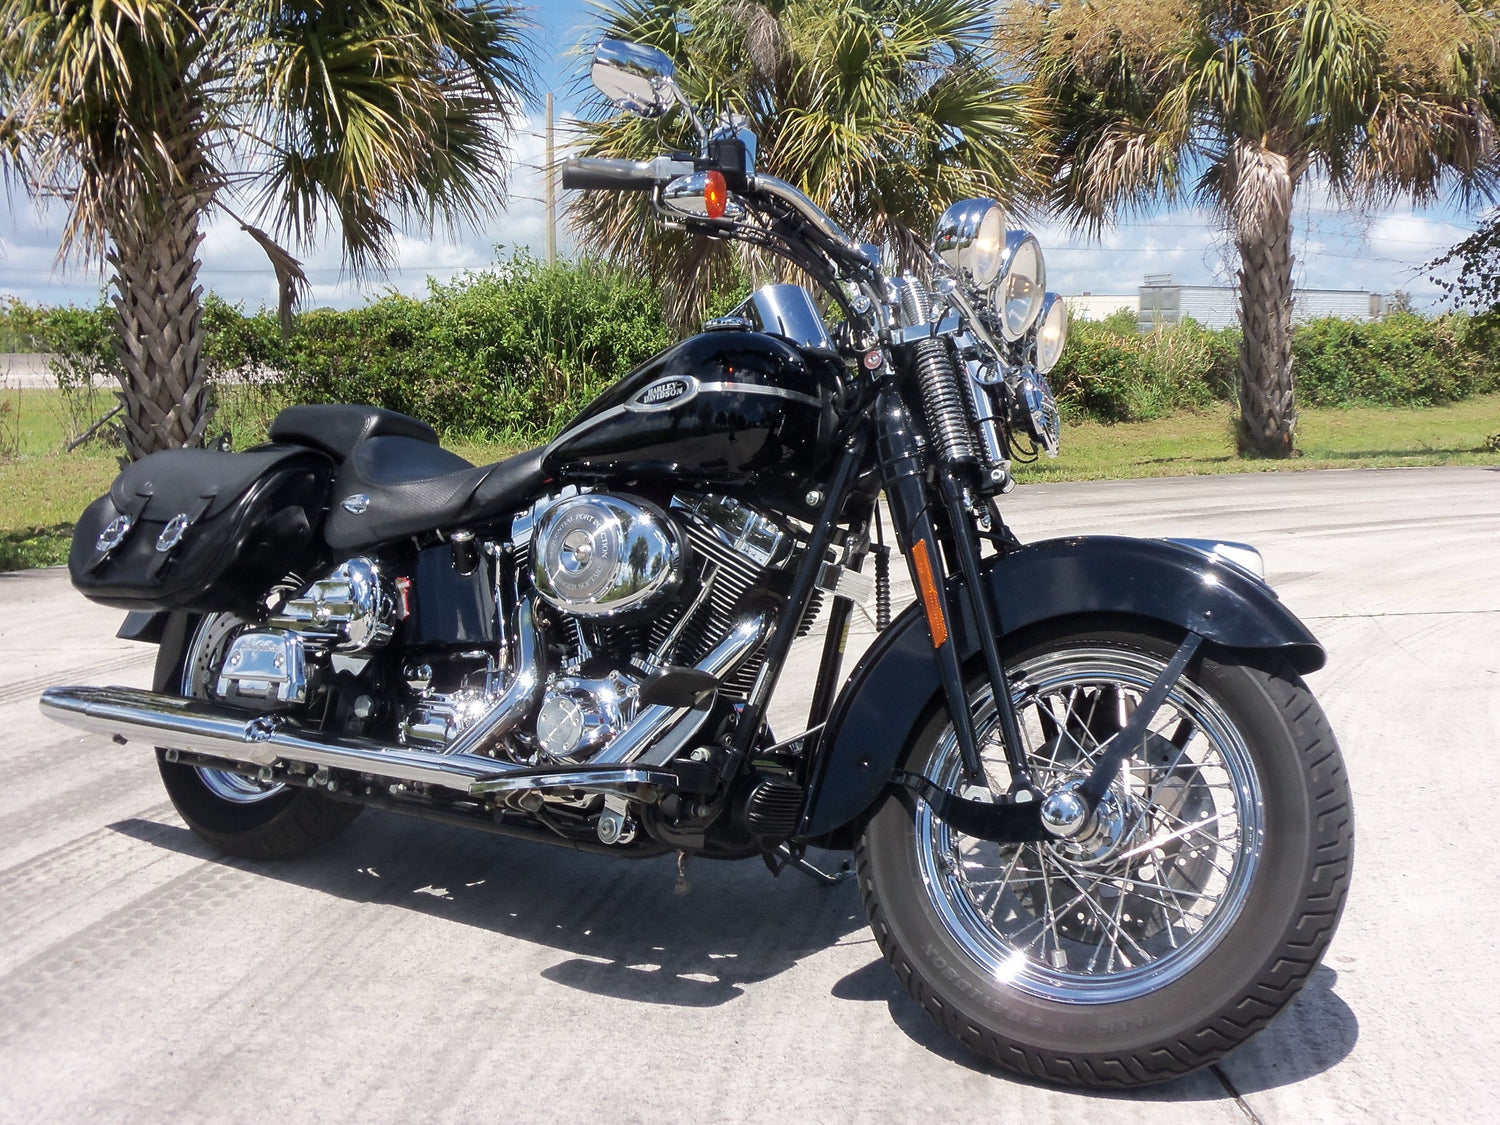 harley davidson flsts flstsi heritage springer service. Black Bedroom Furniture Sets. Home Design Ideas